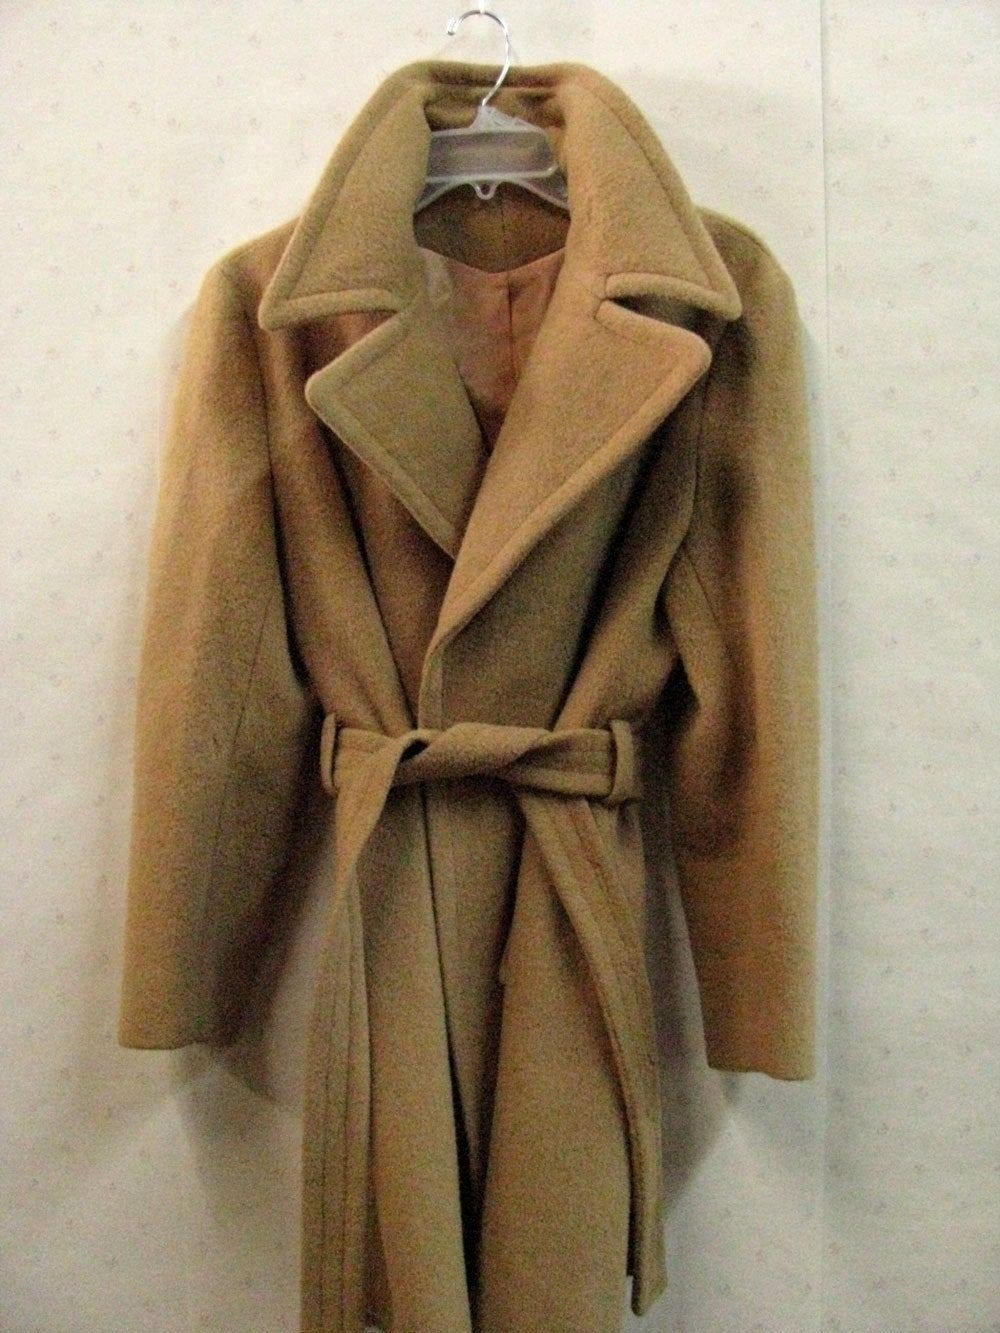 The Best Coat Camel Hair Dress Length Camel Color Womens Vintage By Pictures